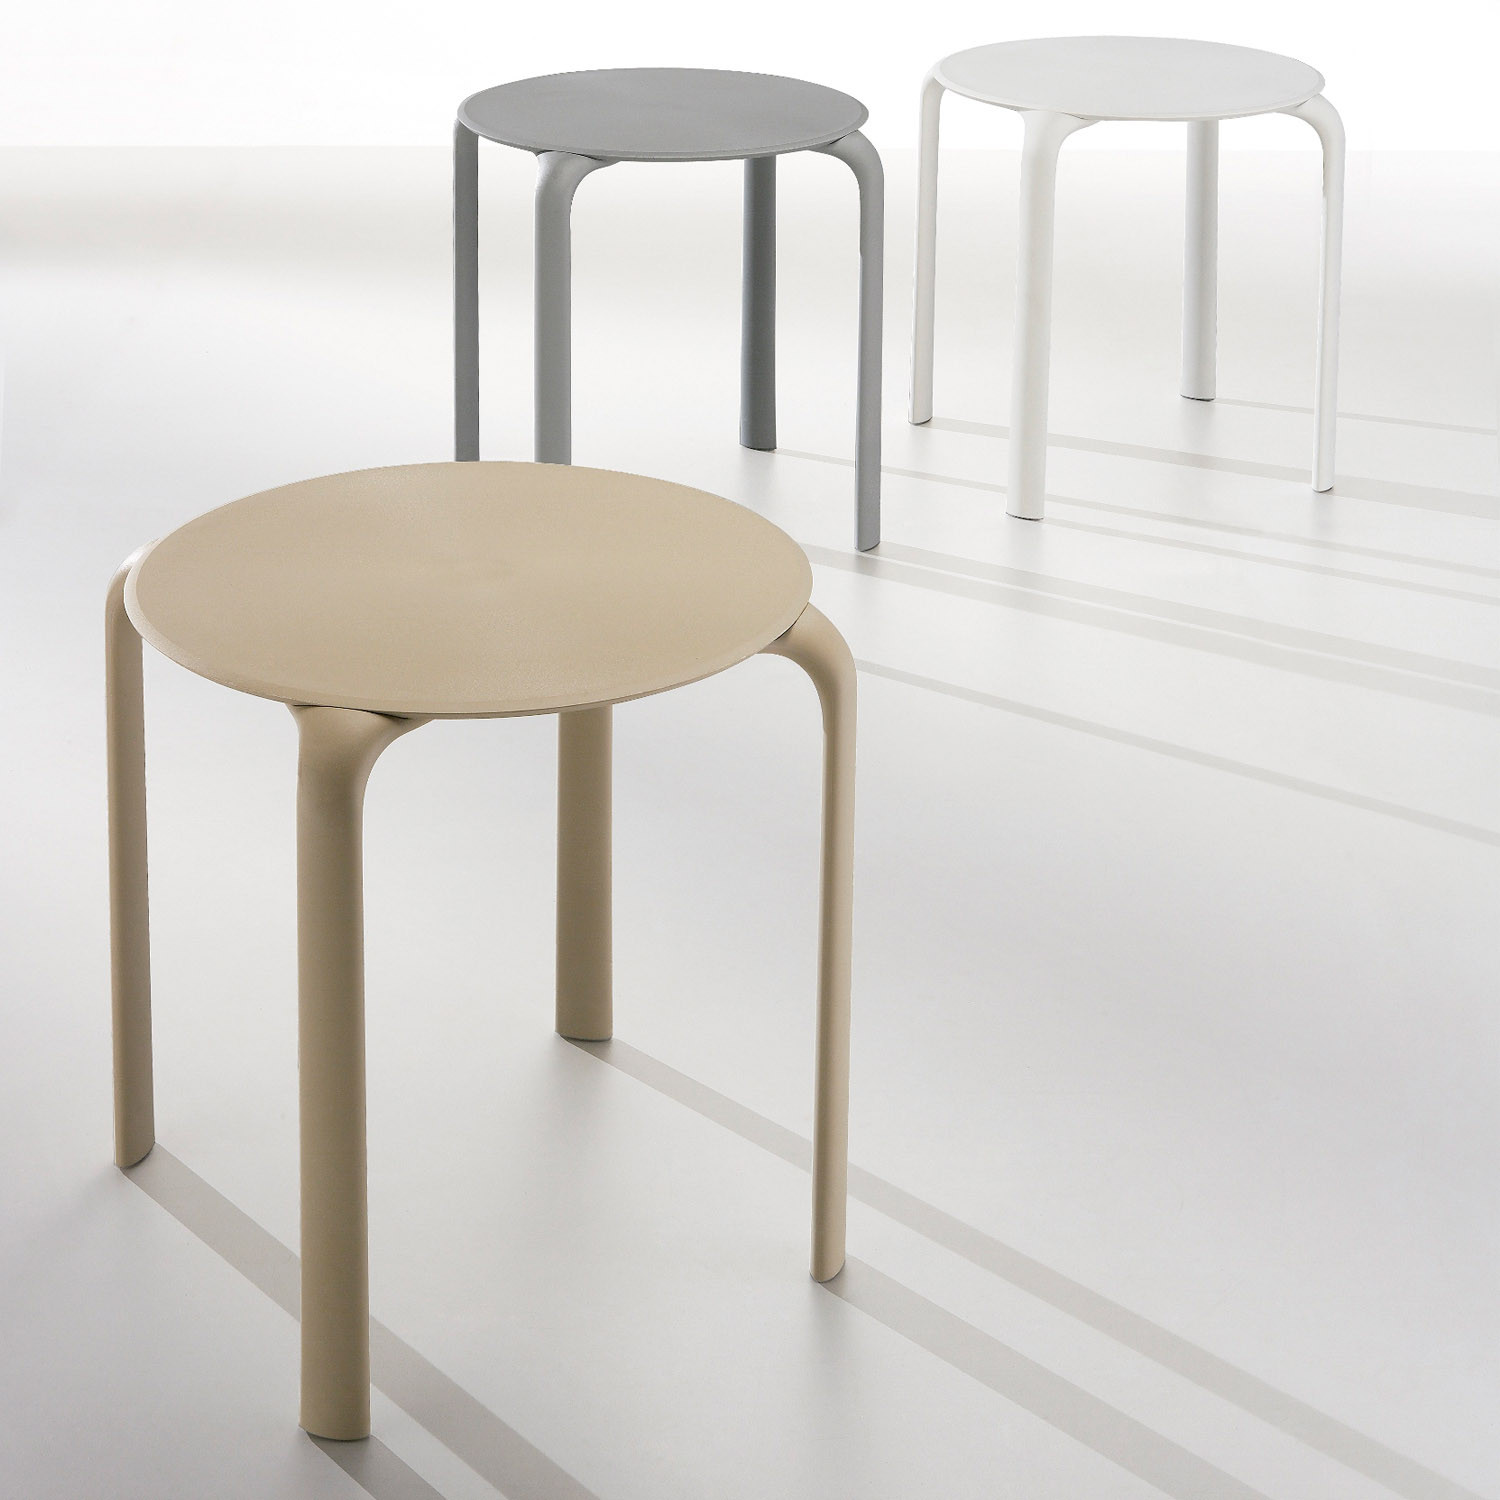 Drop Cafe Tables